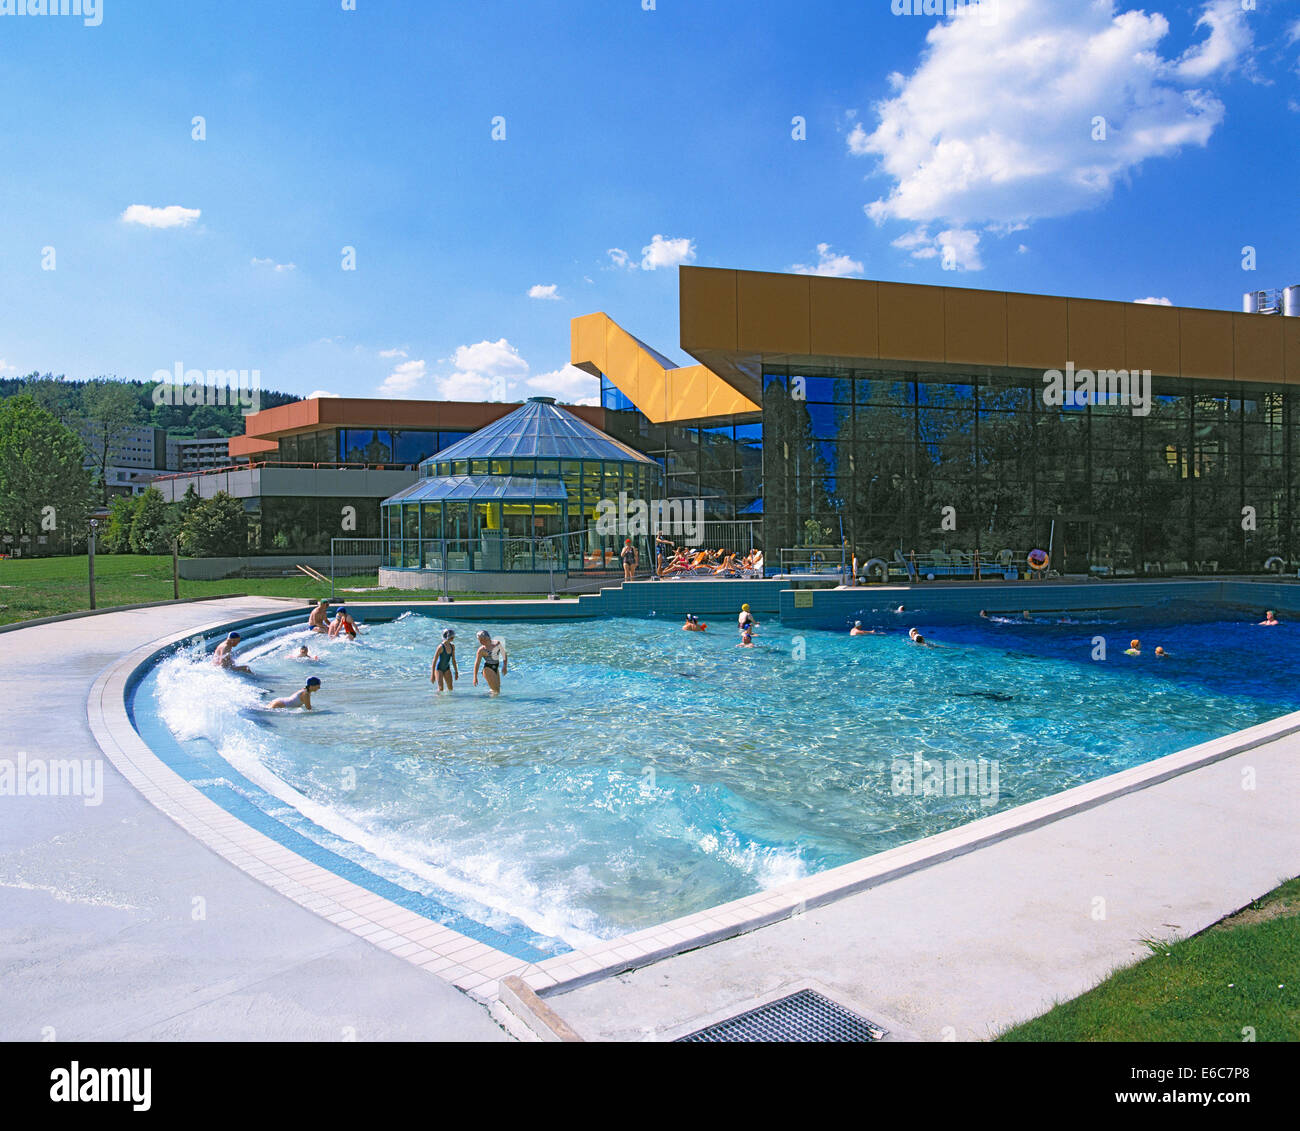 Kurbezirk, Wellenbad, Thermalbad Spessart Therme In Bad